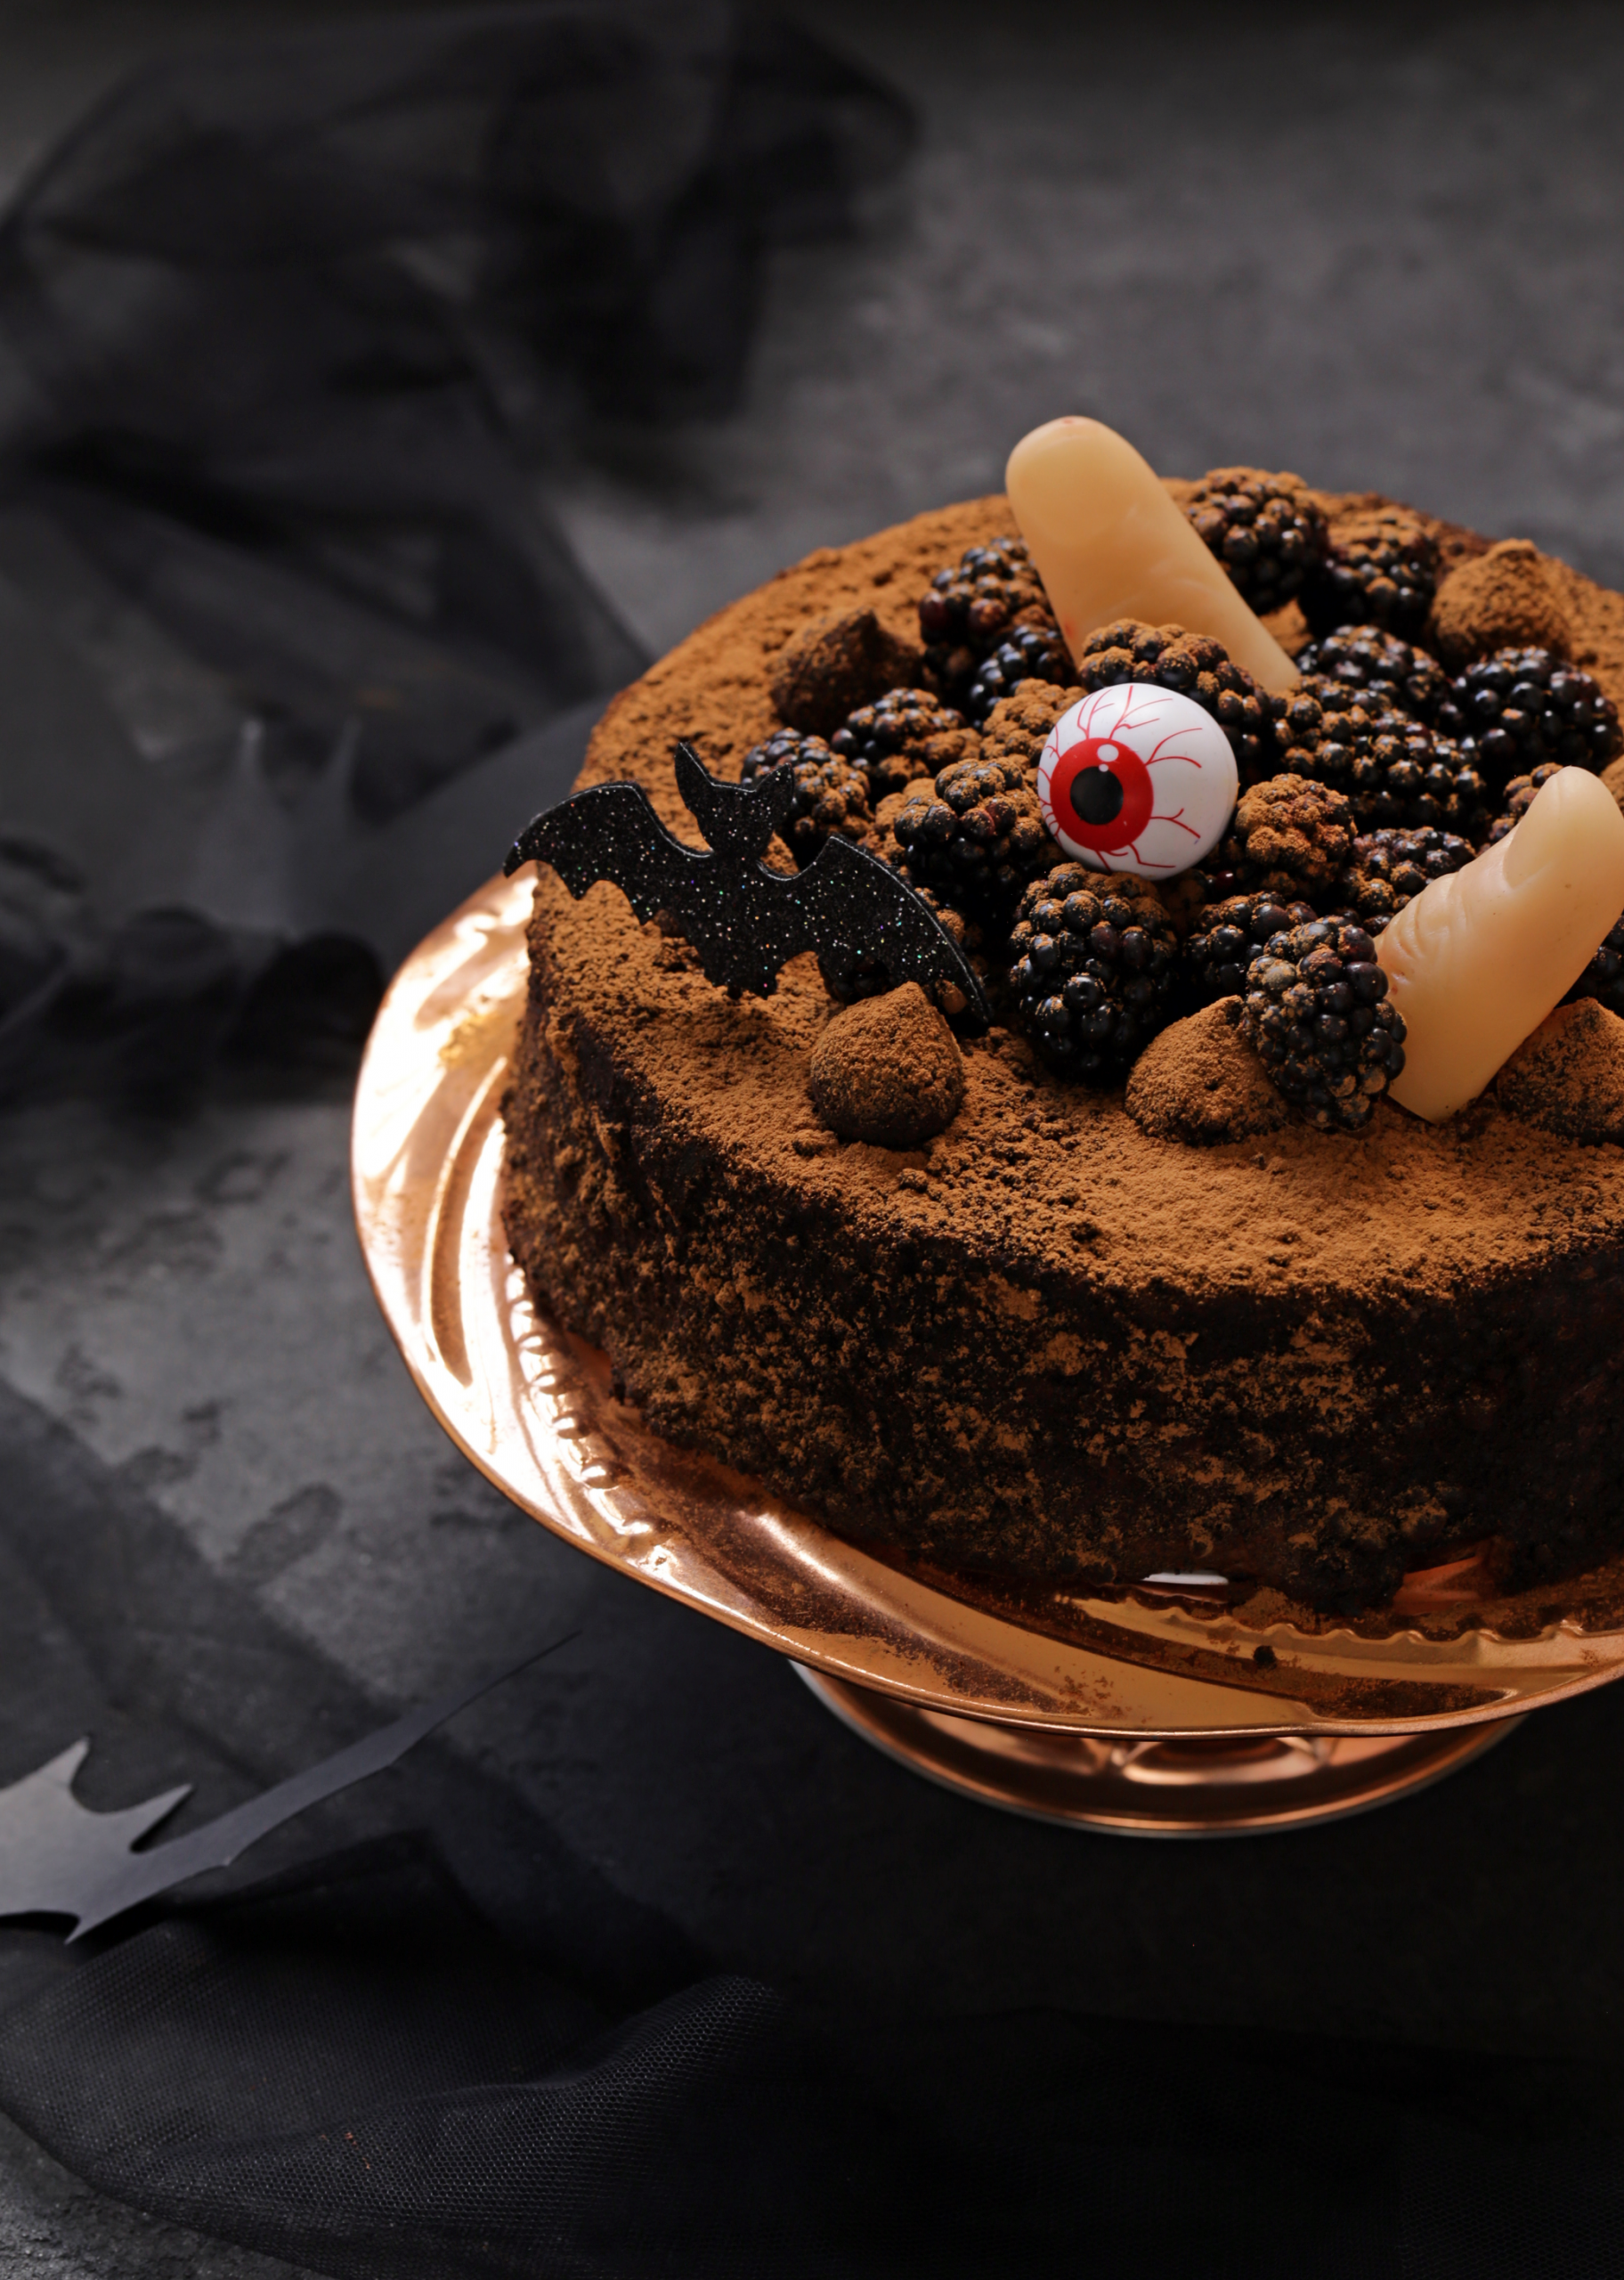 5 Spooky Halloween Recipes to Make With Your Kids